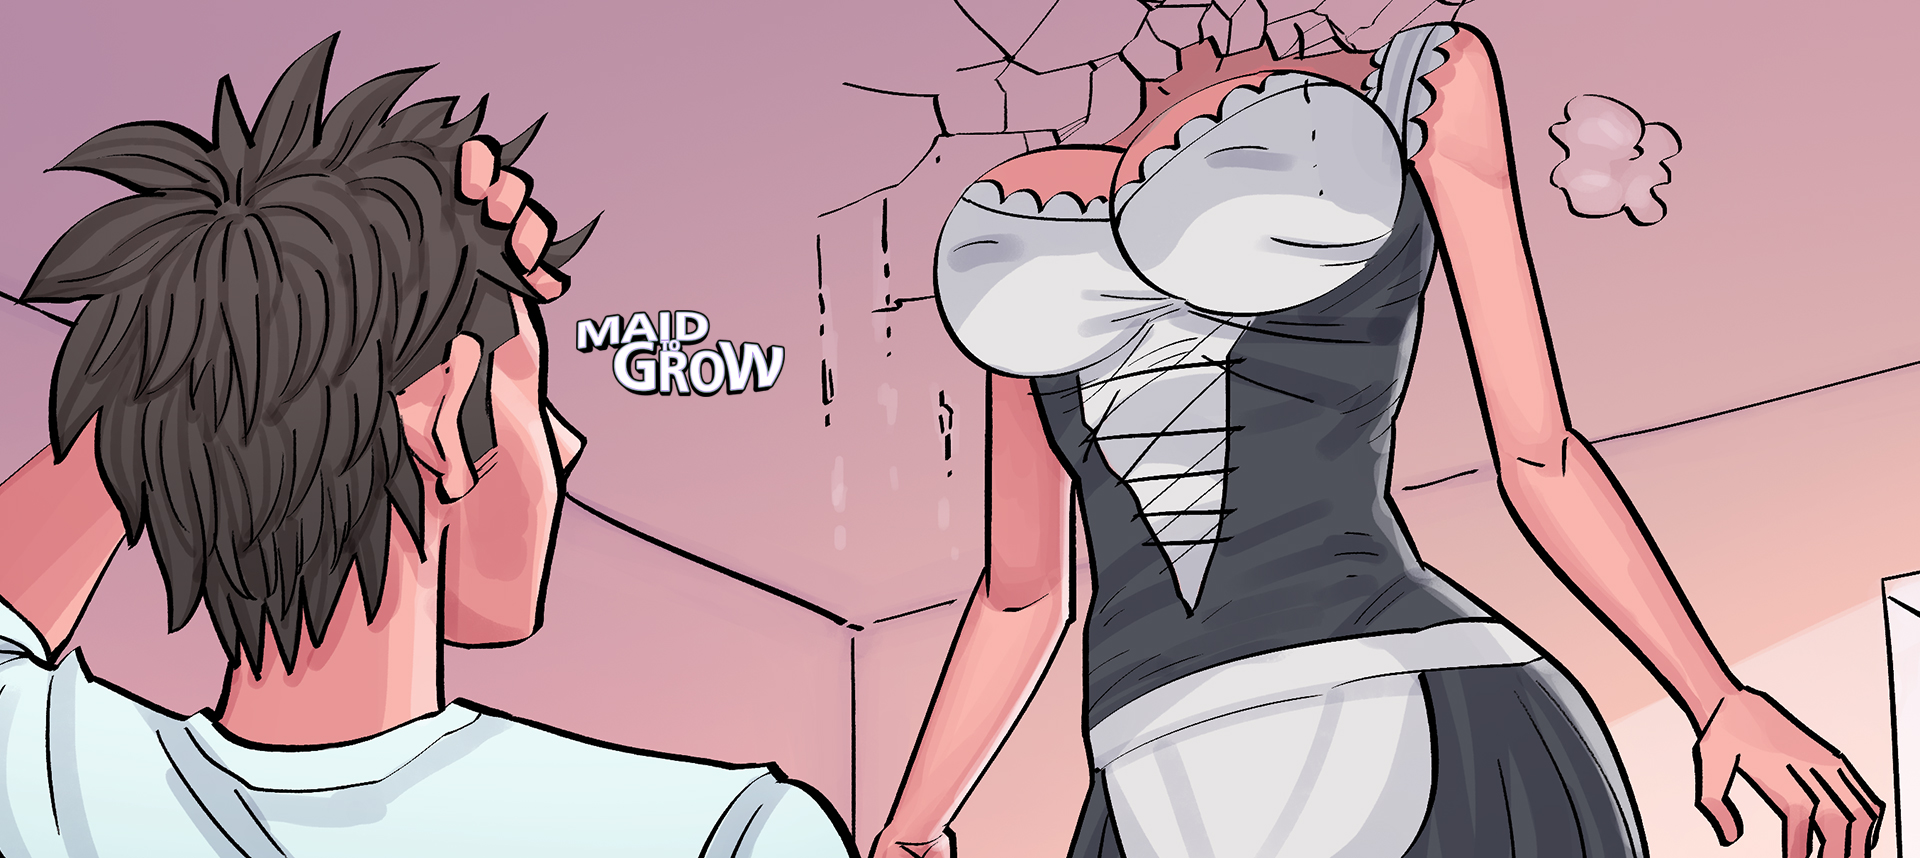 Maid-to-Grow_01-SLIDEb